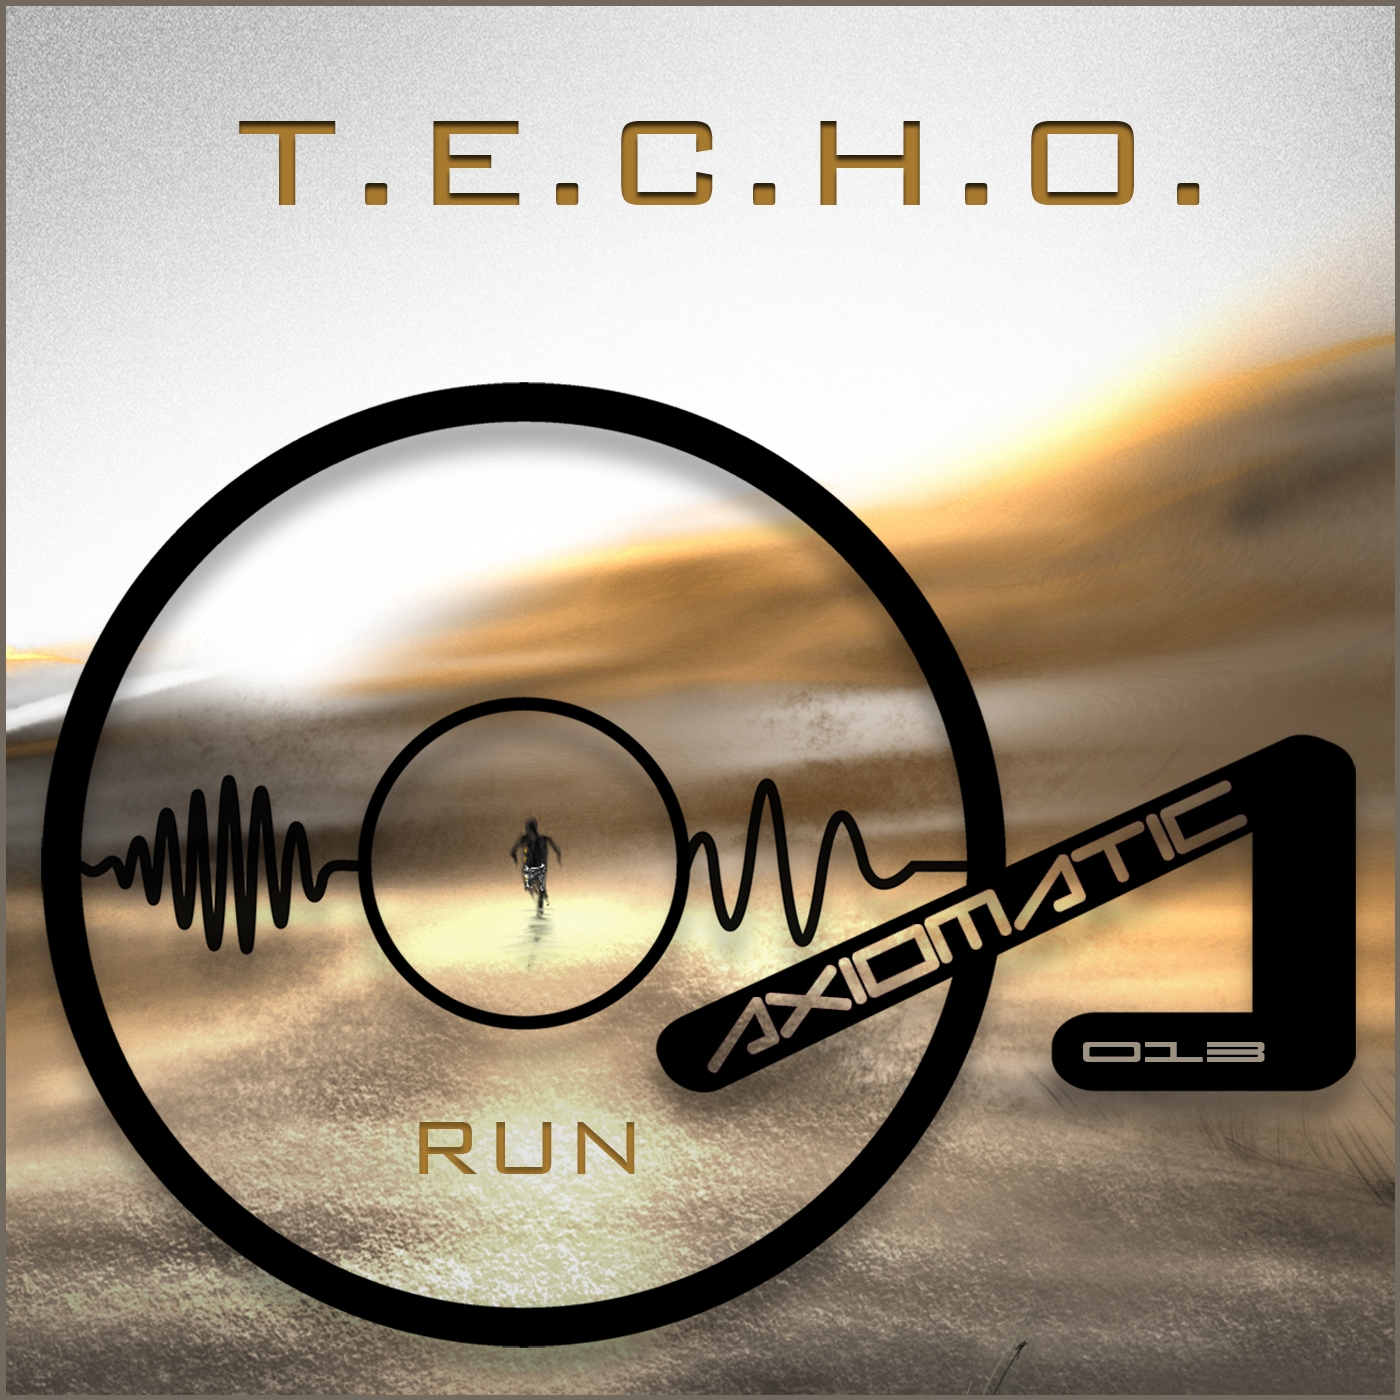 T.E.C.H.O. - Run (Extended Version)